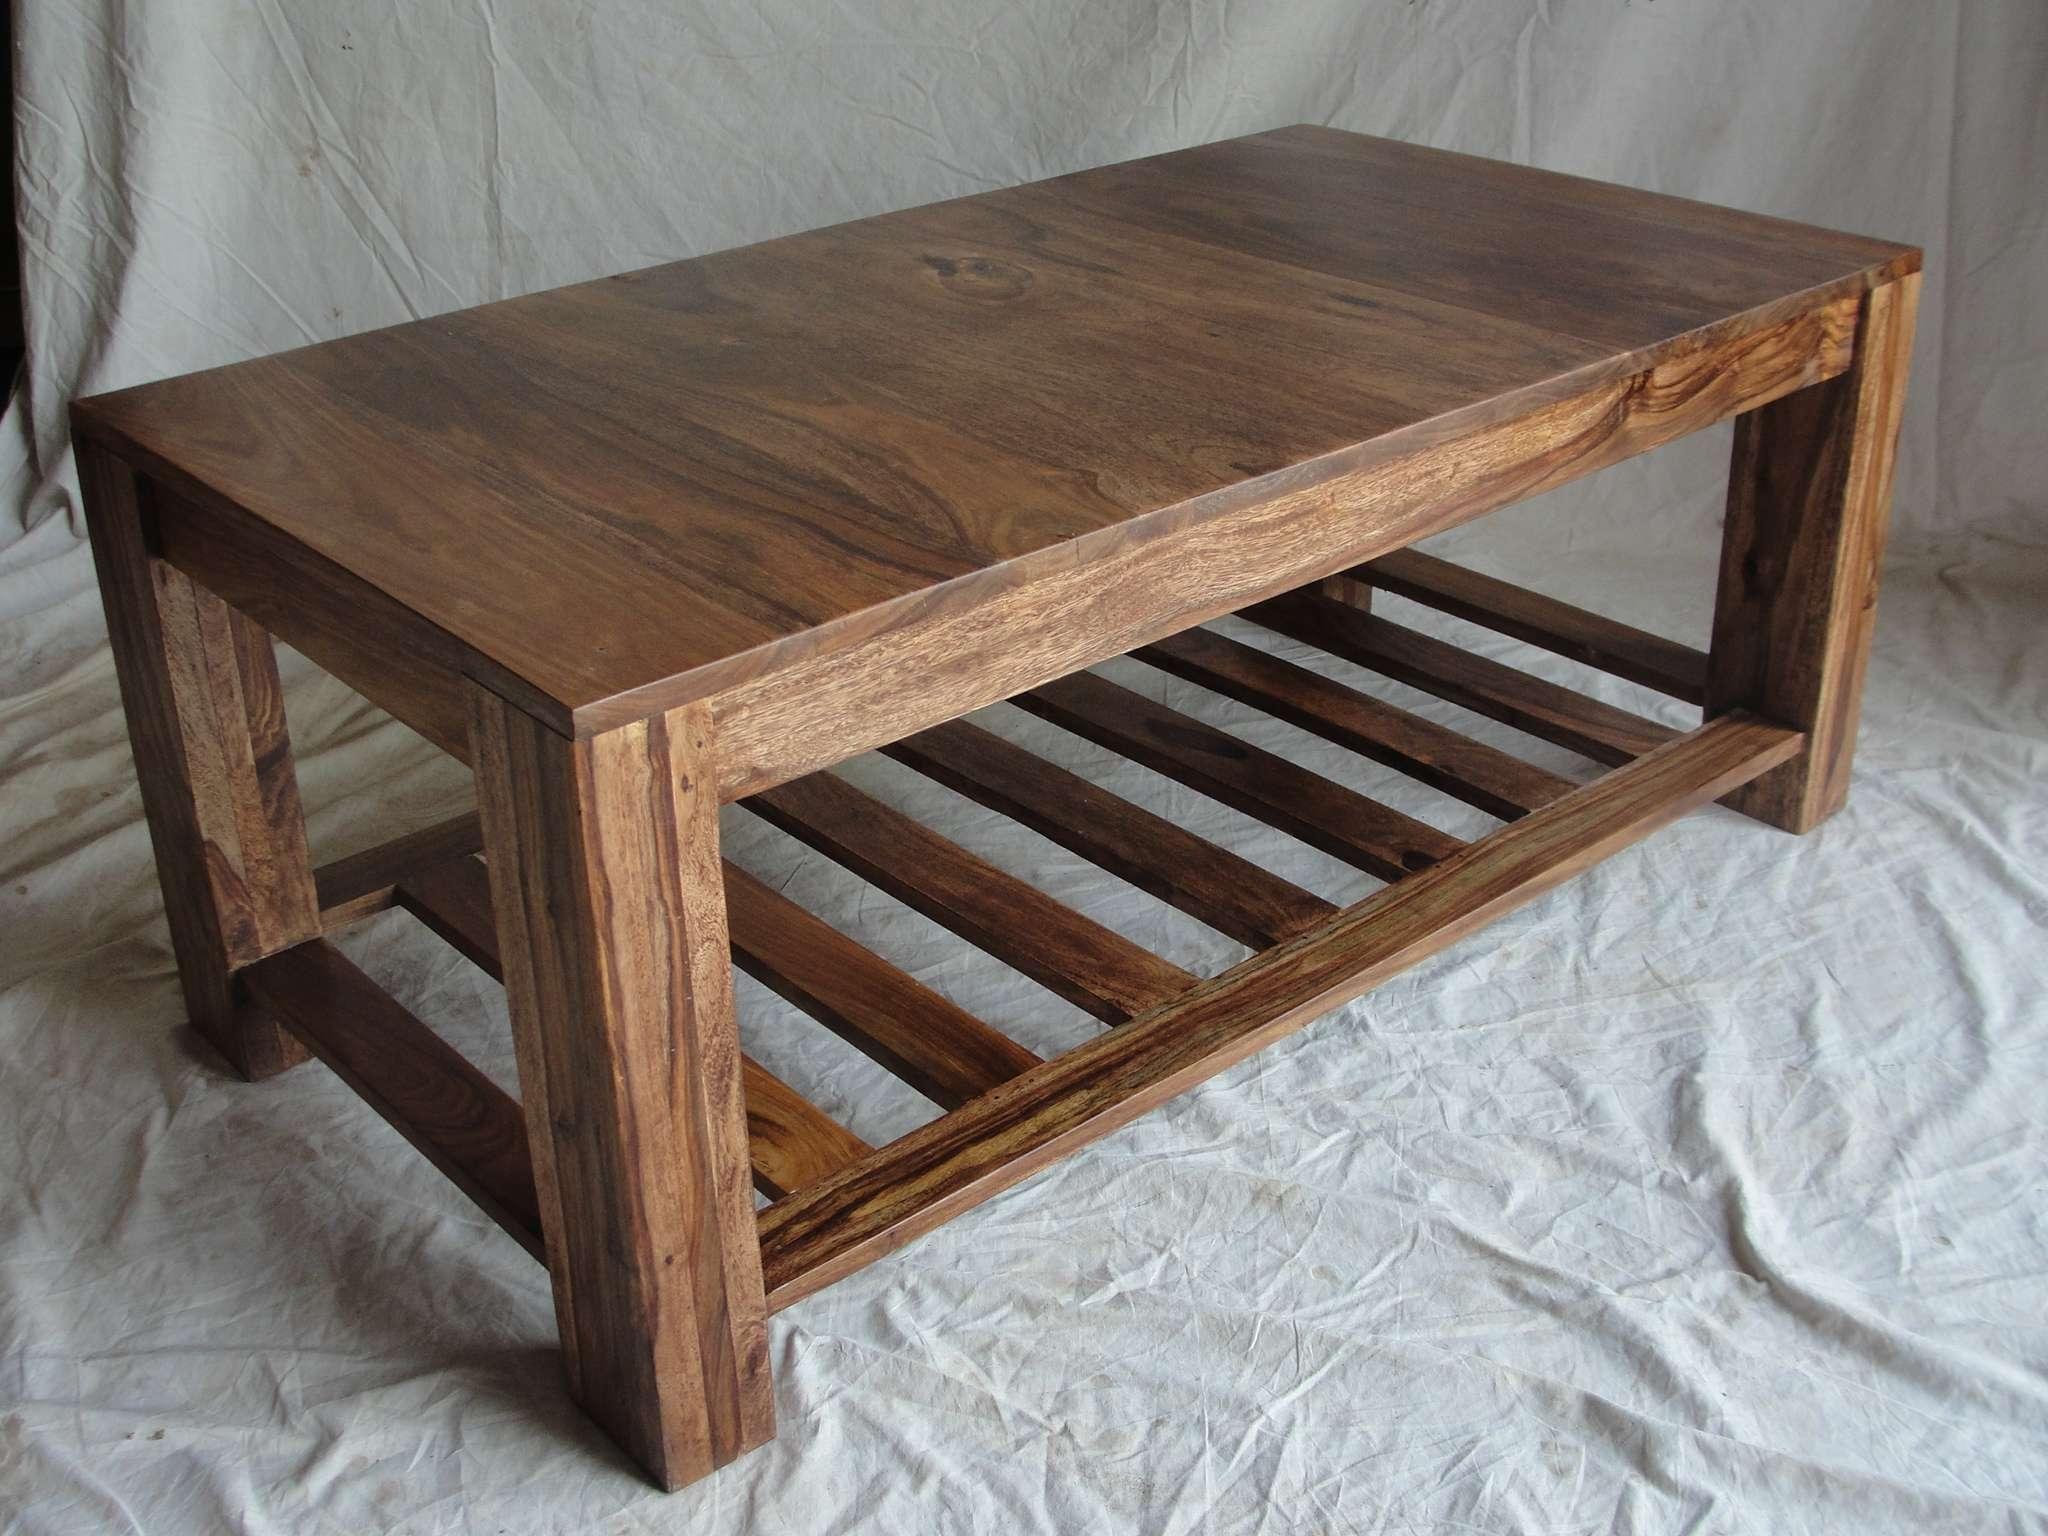 Wooden Coffee Tables Diy – Wooden Coffee Tables And How To Prevent Inside Most Popular Wooden Coffee Tables (View 2 of 20)